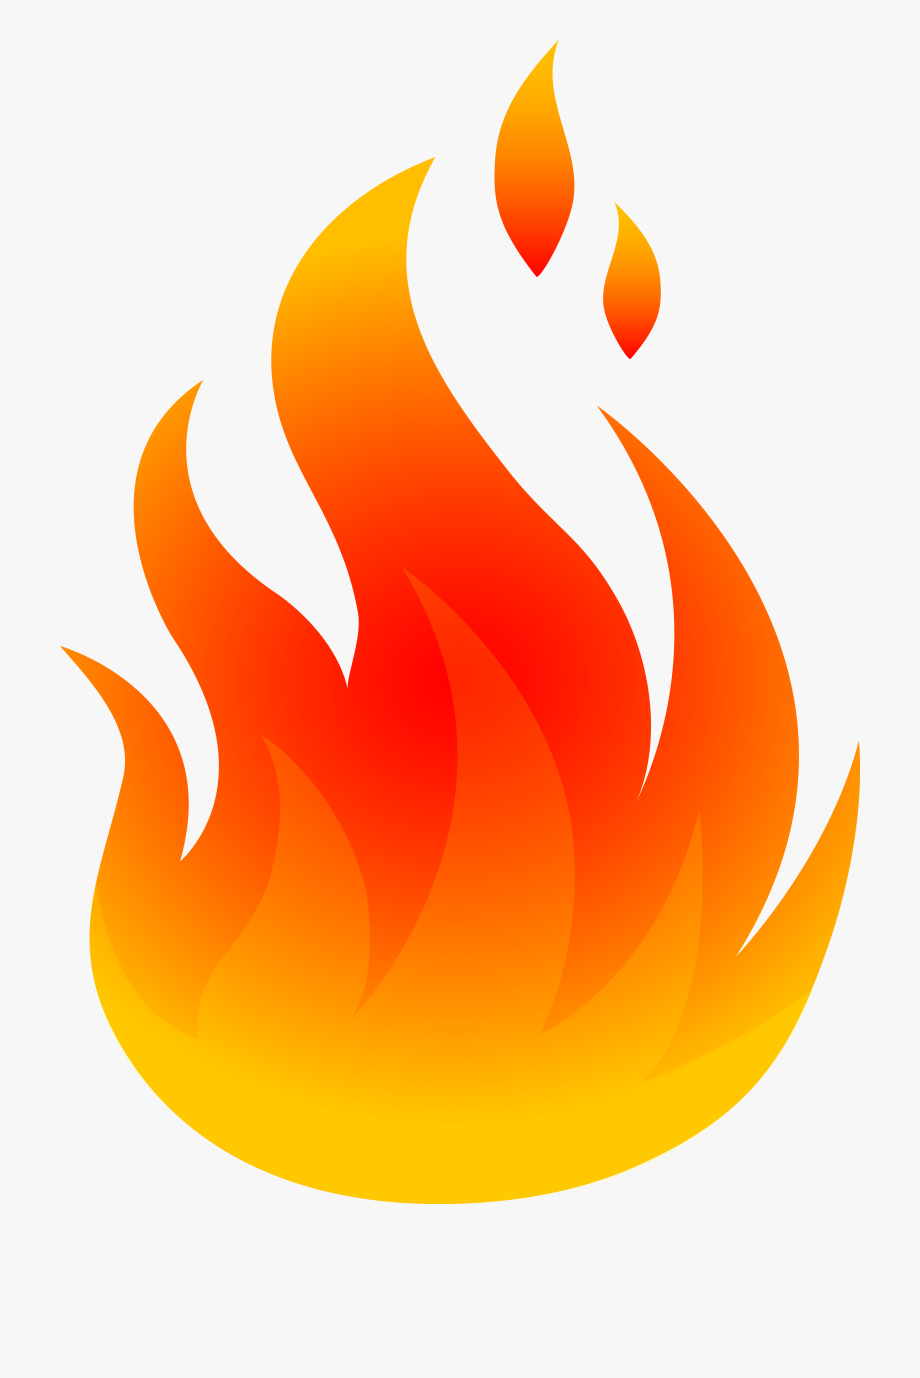 Clipart fire. Flames free image flame